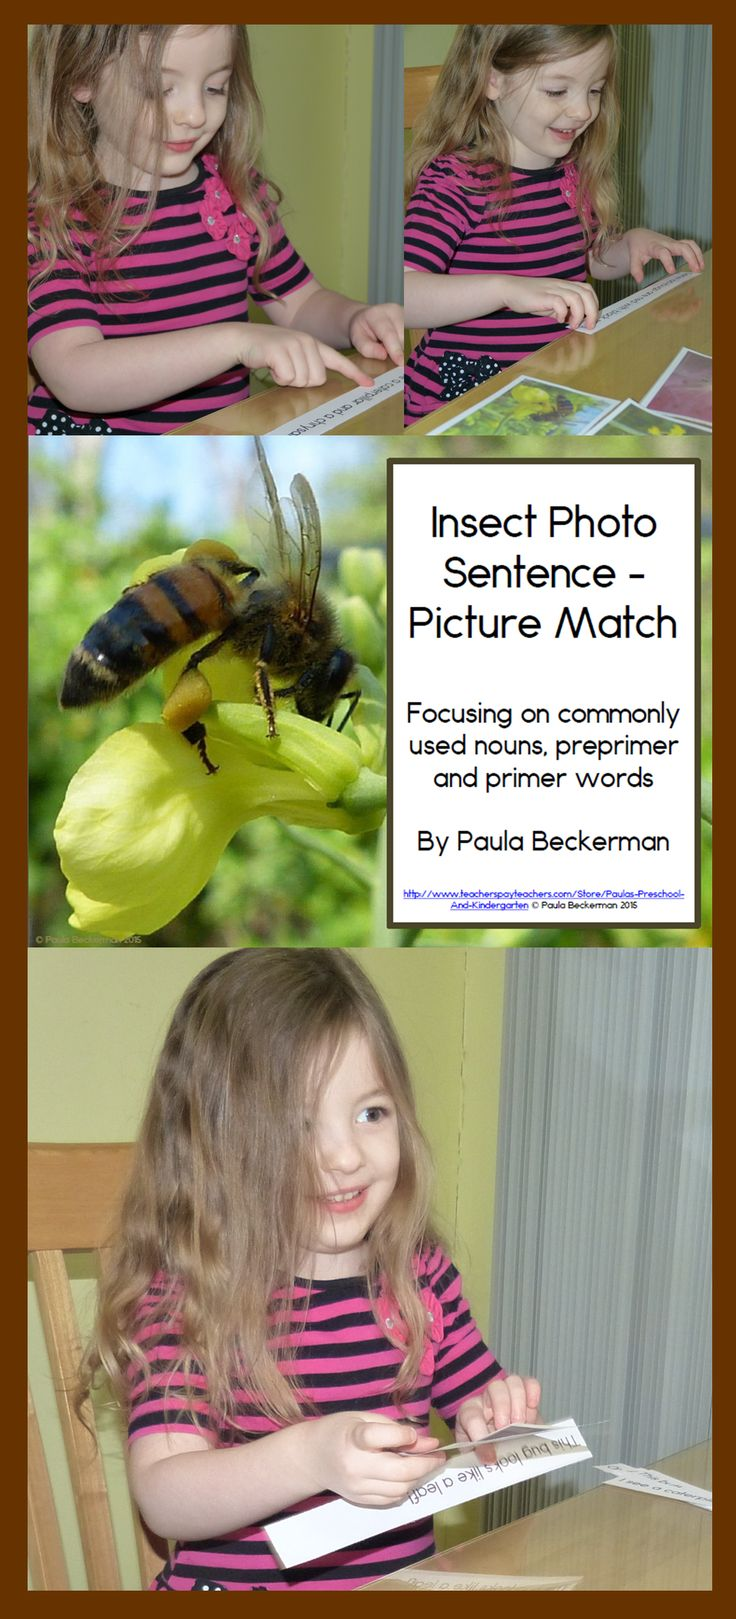 A complete literacy and/or science center, Insect Photo Sentence Picture Match comes with 12 close up photographs of common insects, and sentences to match. With a focus on commonly used nouns, preprimer and primer words, these simple factual sentences will teach your students about insects including butterfly, dragonfly, katydid, ladybug, praying mantis, wasp, beetles, ants and bumblebees.